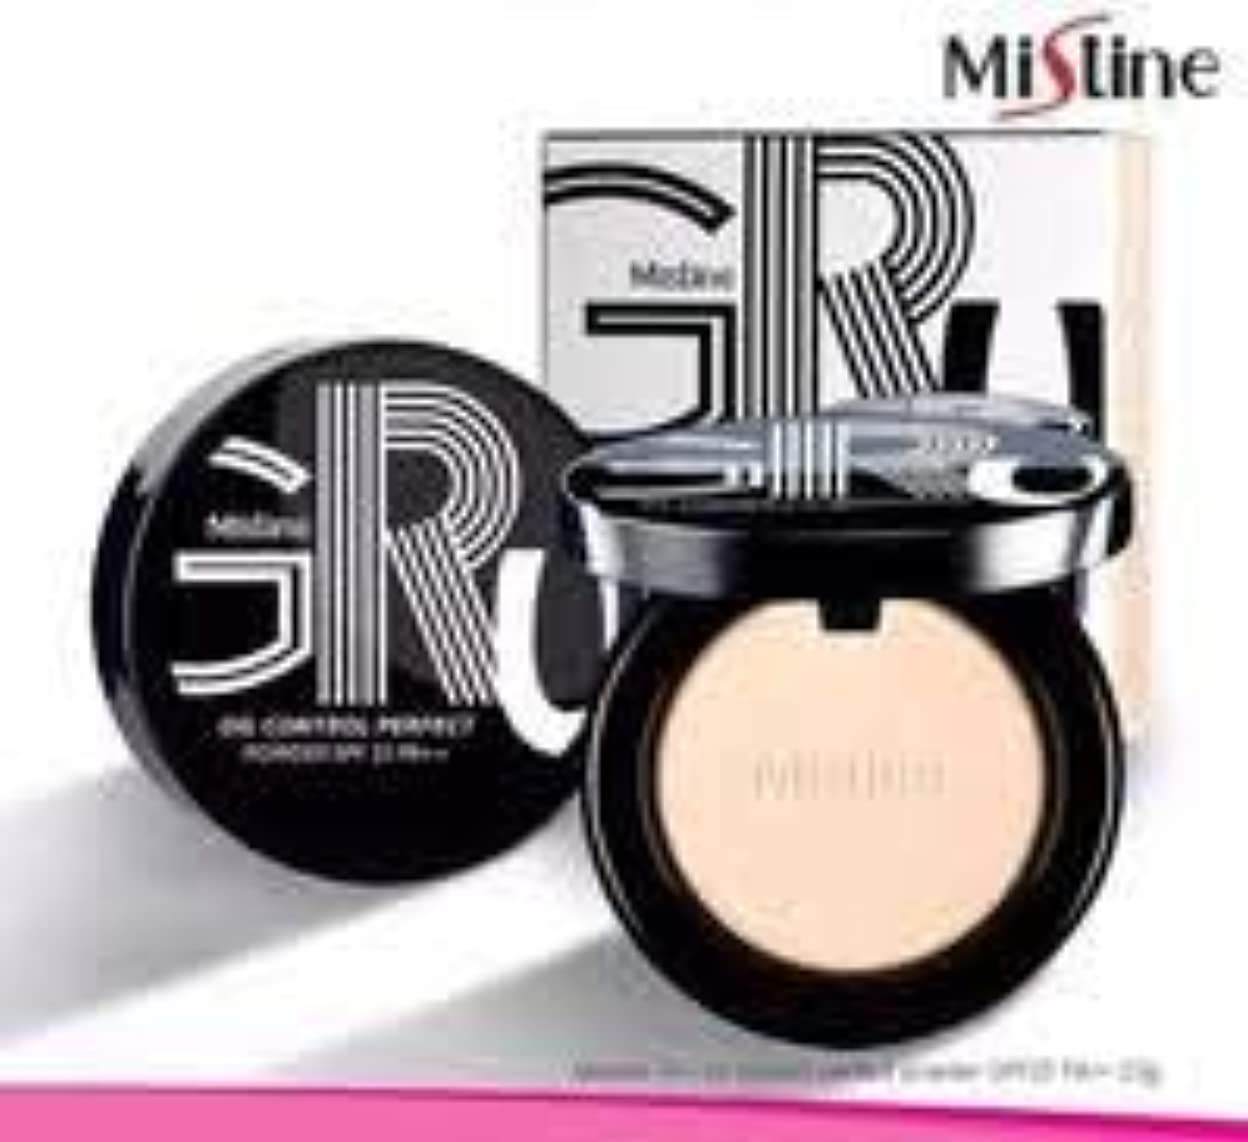 ありふれたバイオリニスト郊外Mistine Gru Oil Control Perfect Powder SPF25 Shade S2 Medium